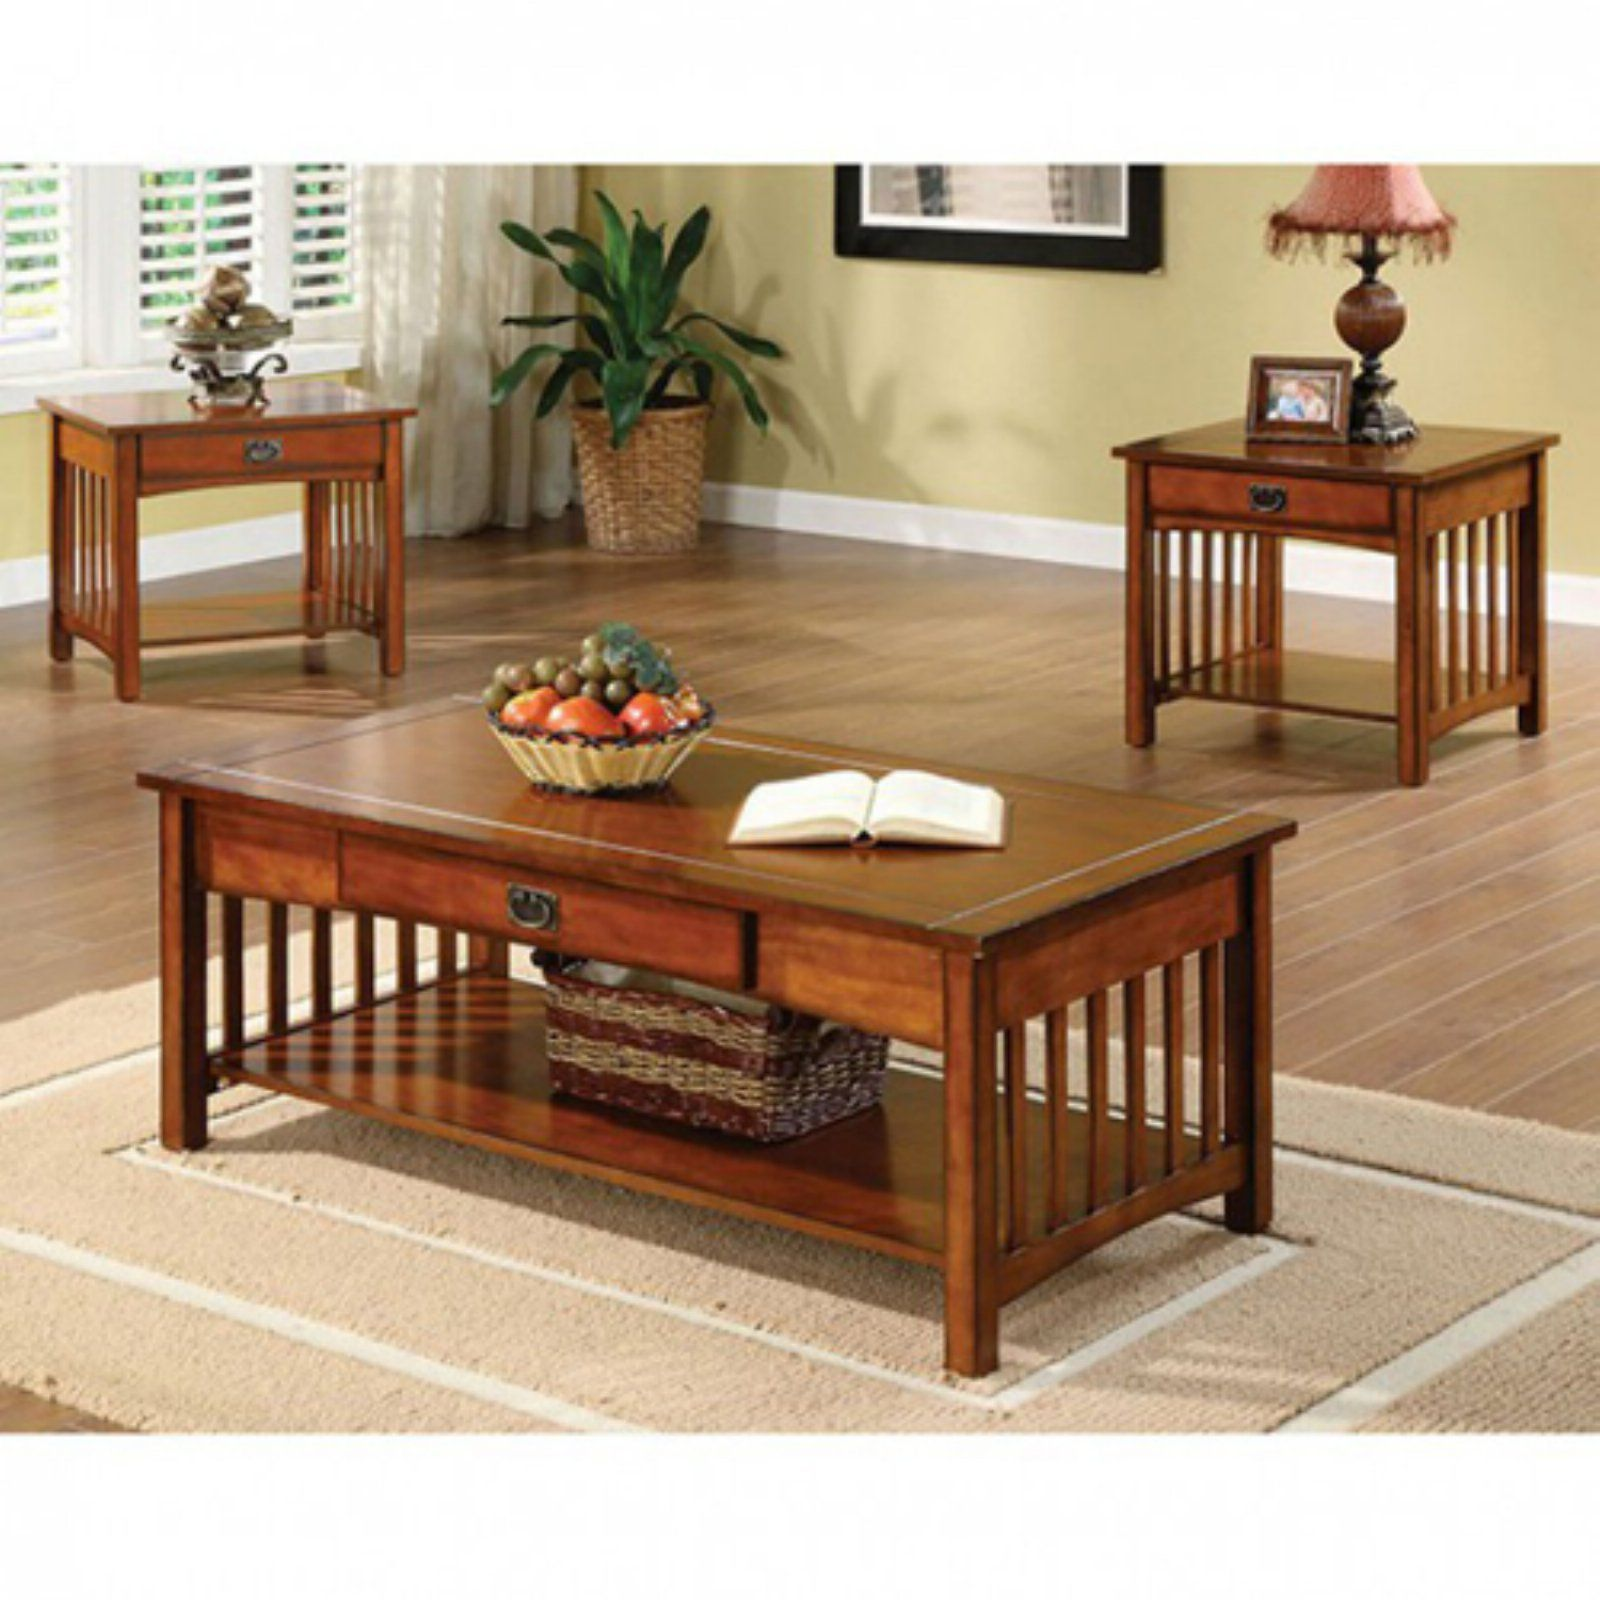 Benzara Seville 3 Piece Coffee Table Set Mission Style Furniture Mission Style Living Room Coffee Table [ 1600 x 1600 Pixel ]